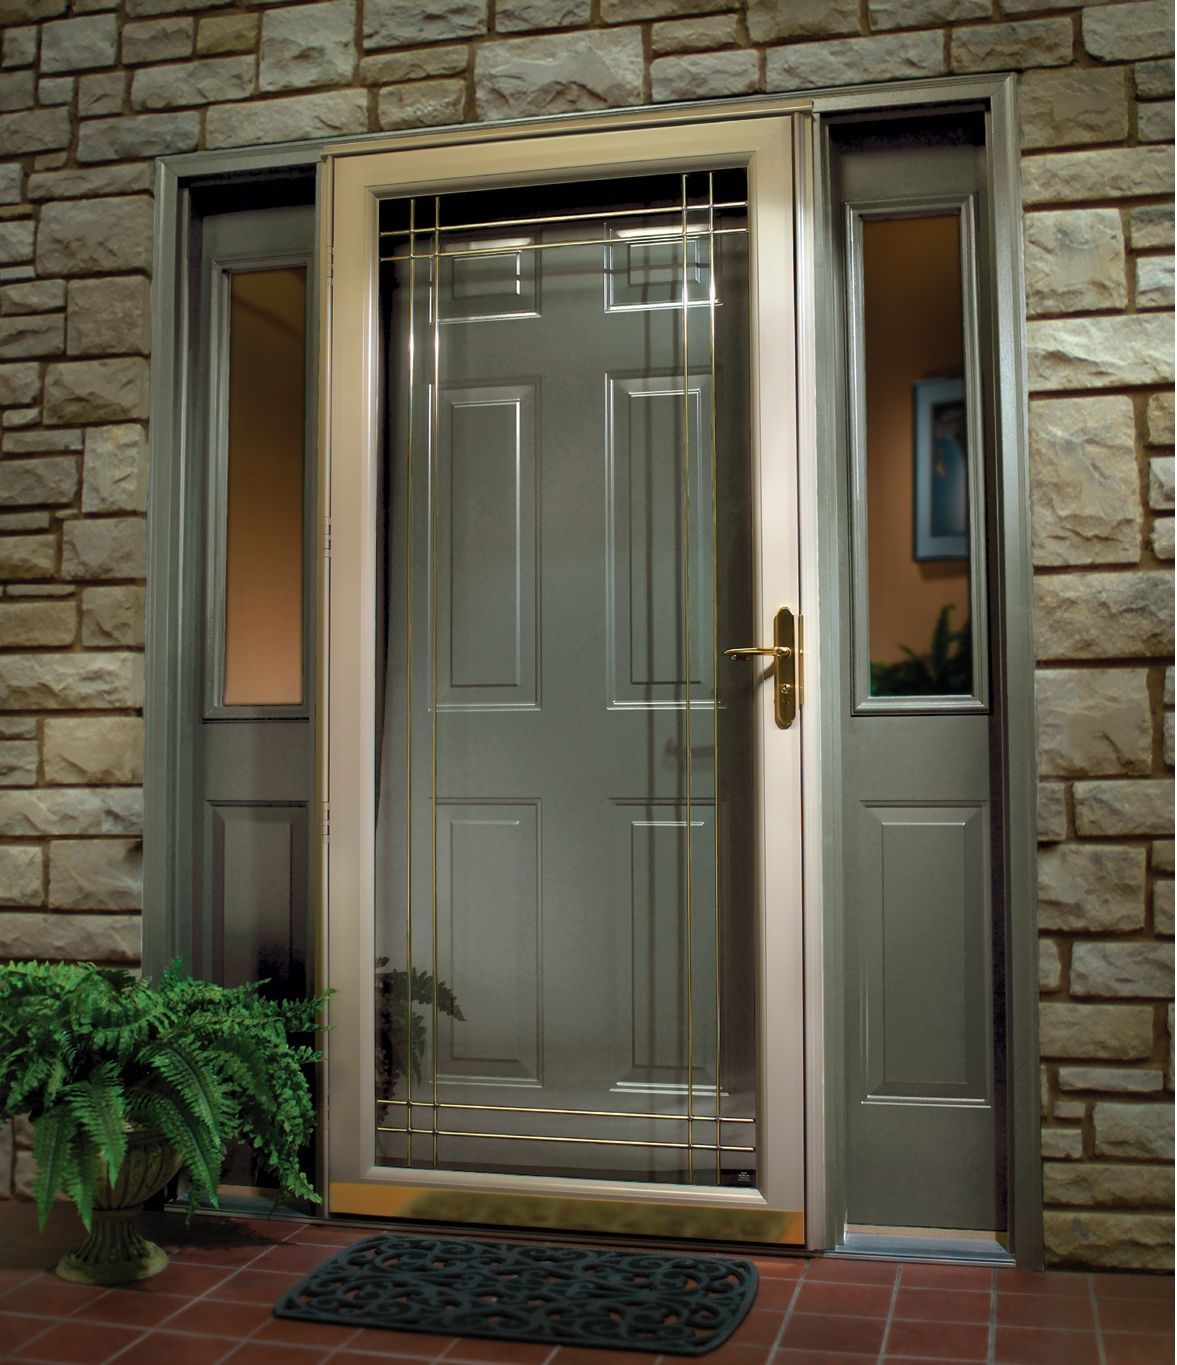 Exterior doors for homes front door ideas front entry for Exterior front entry doors